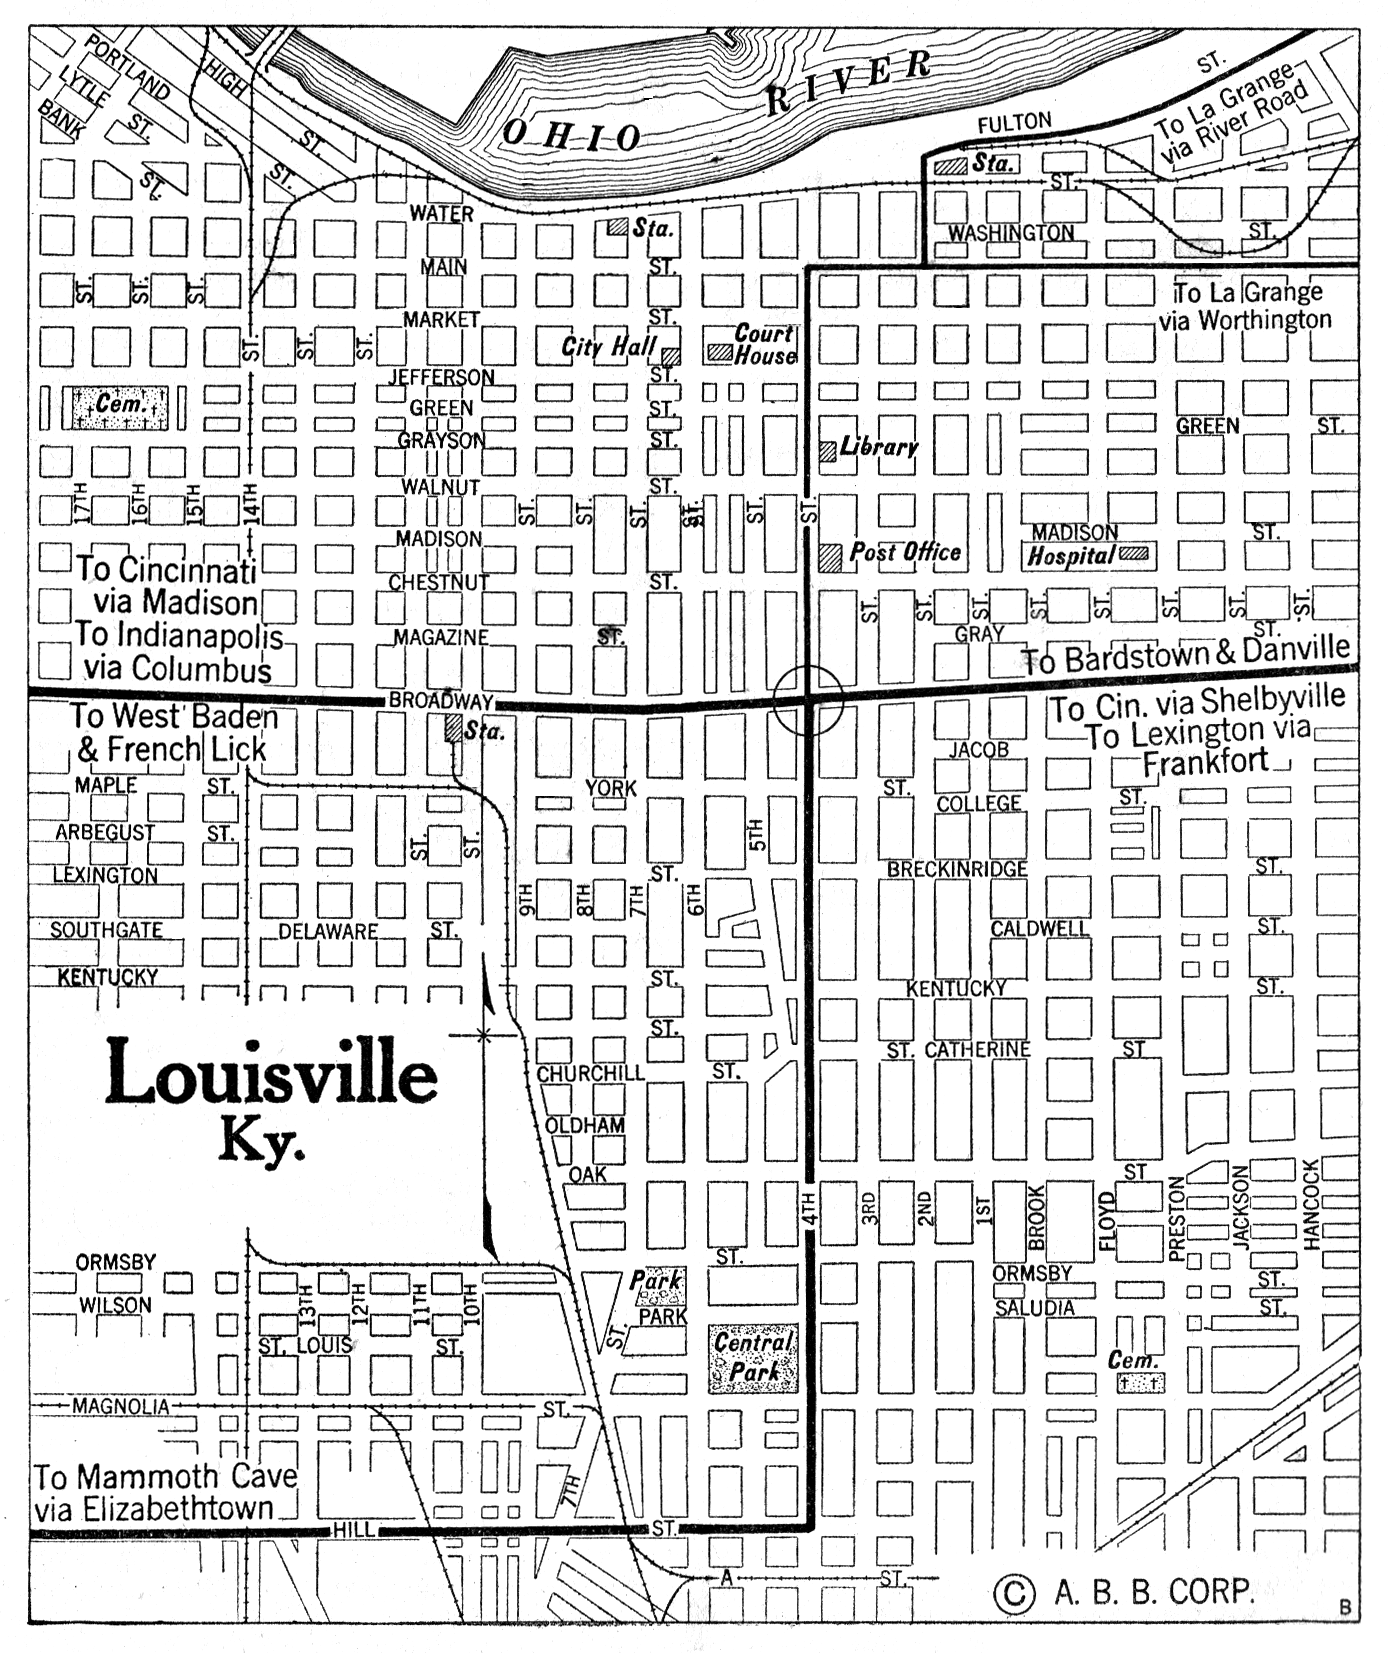 Kentucky City Maps At AmericanRoads